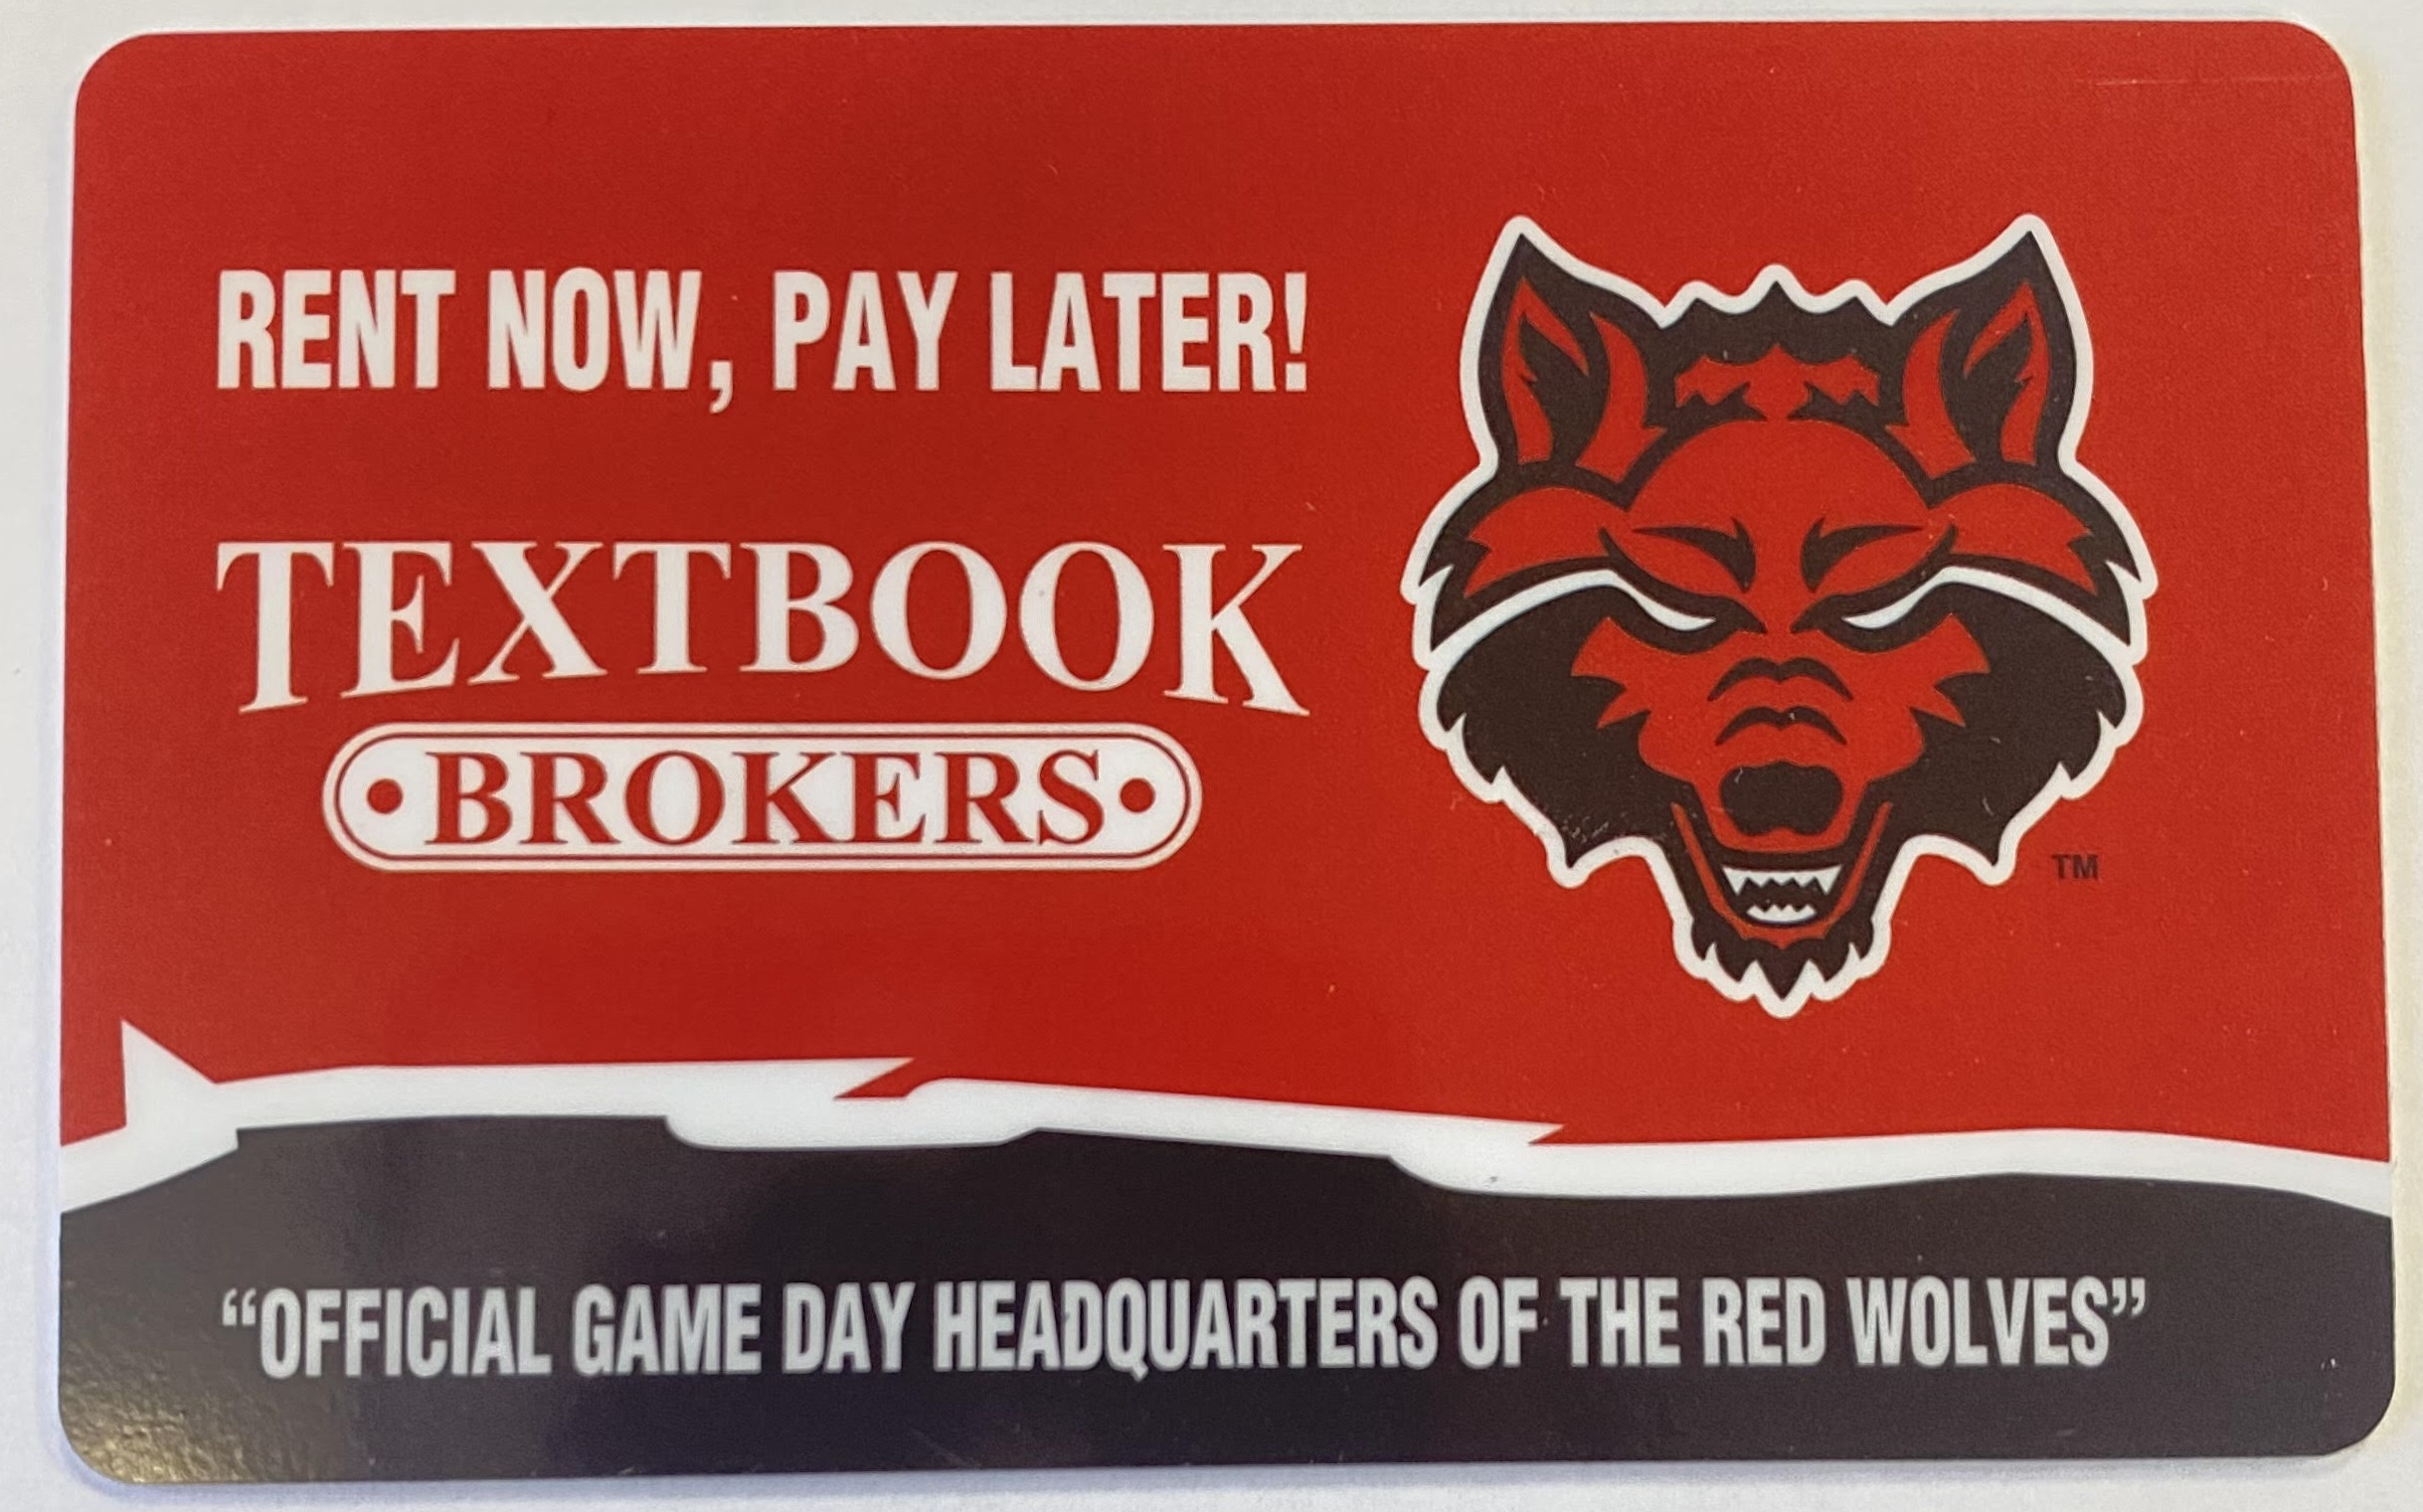 $250 Textbook Brokers Gift Card